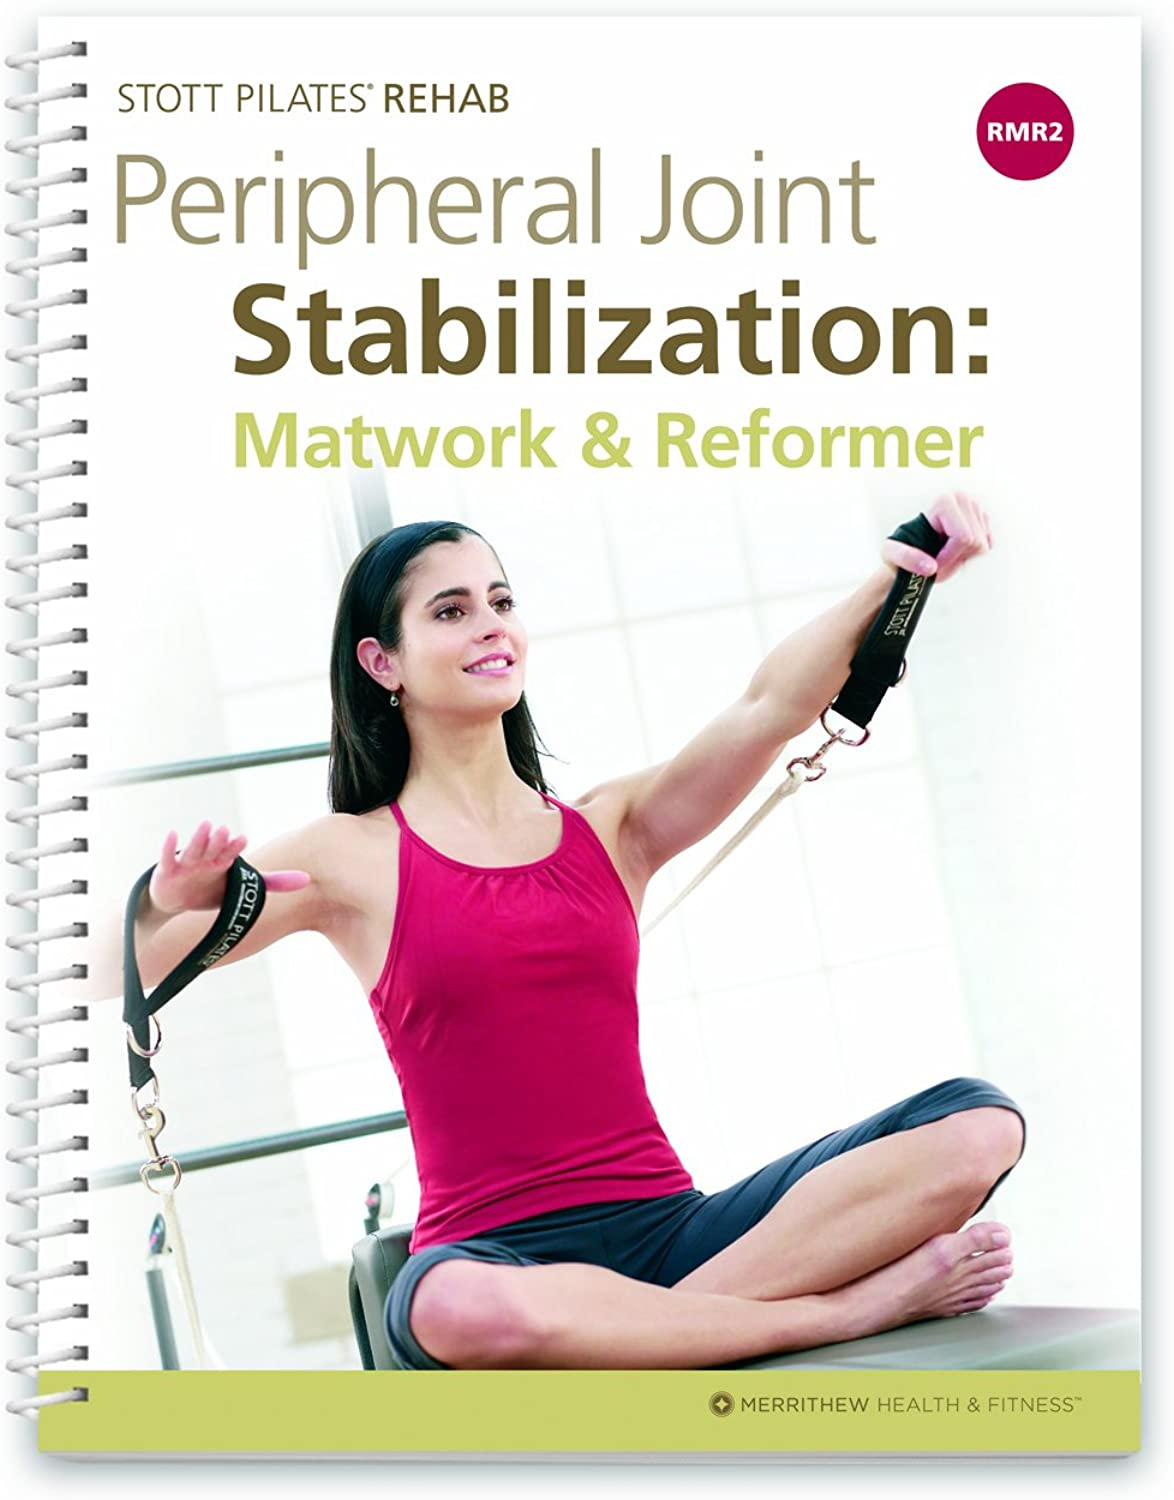 STOTT PILATES Rehab Manual  RMR2 Support Material by STOTT PILATES